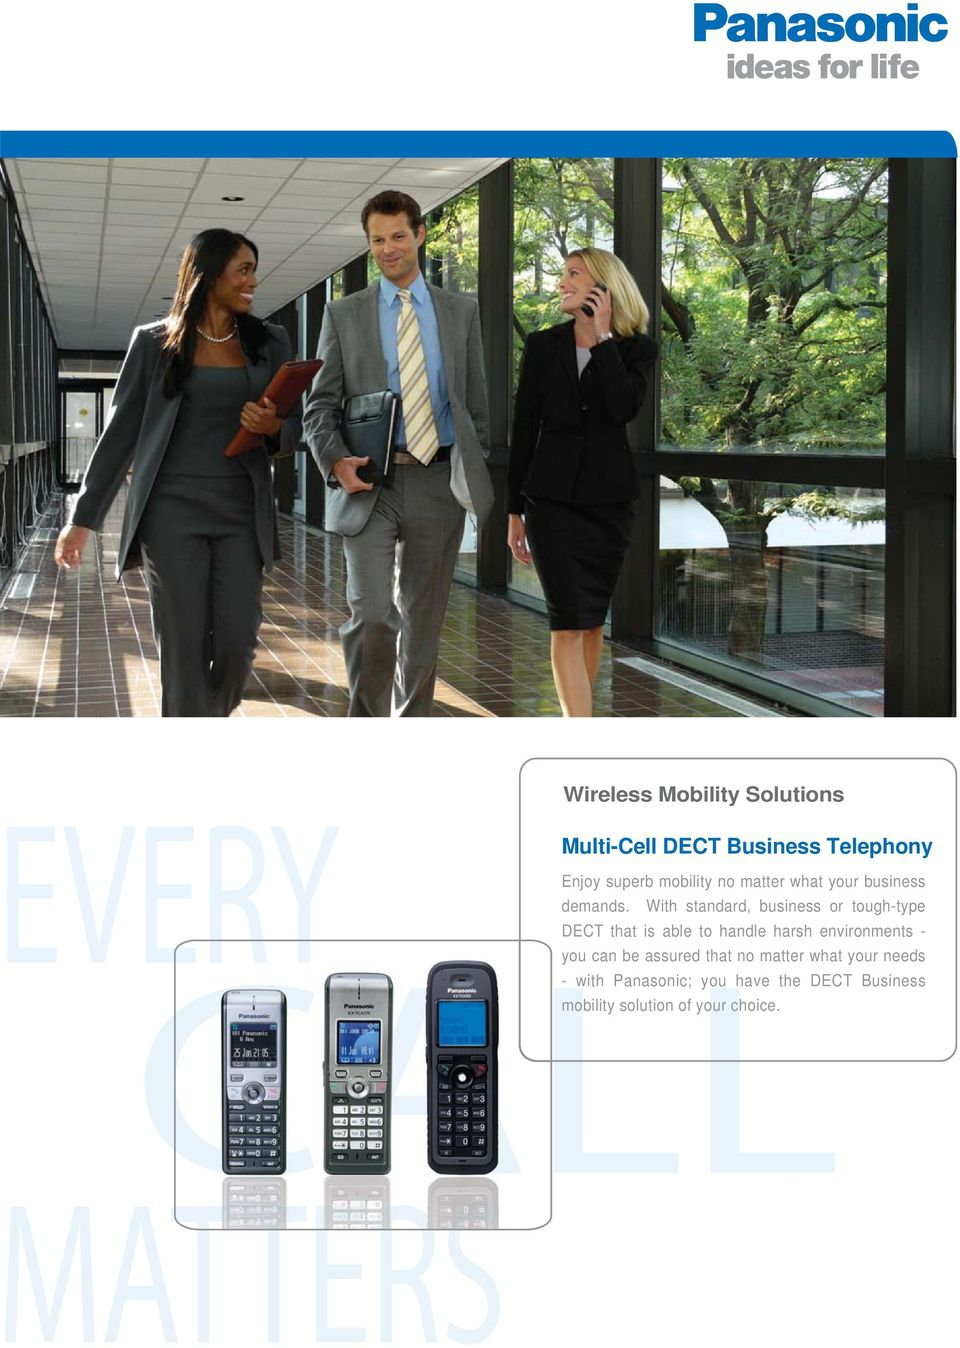 DECT Business Telephony Enjoy superb mobility no matter what your business DECT that is